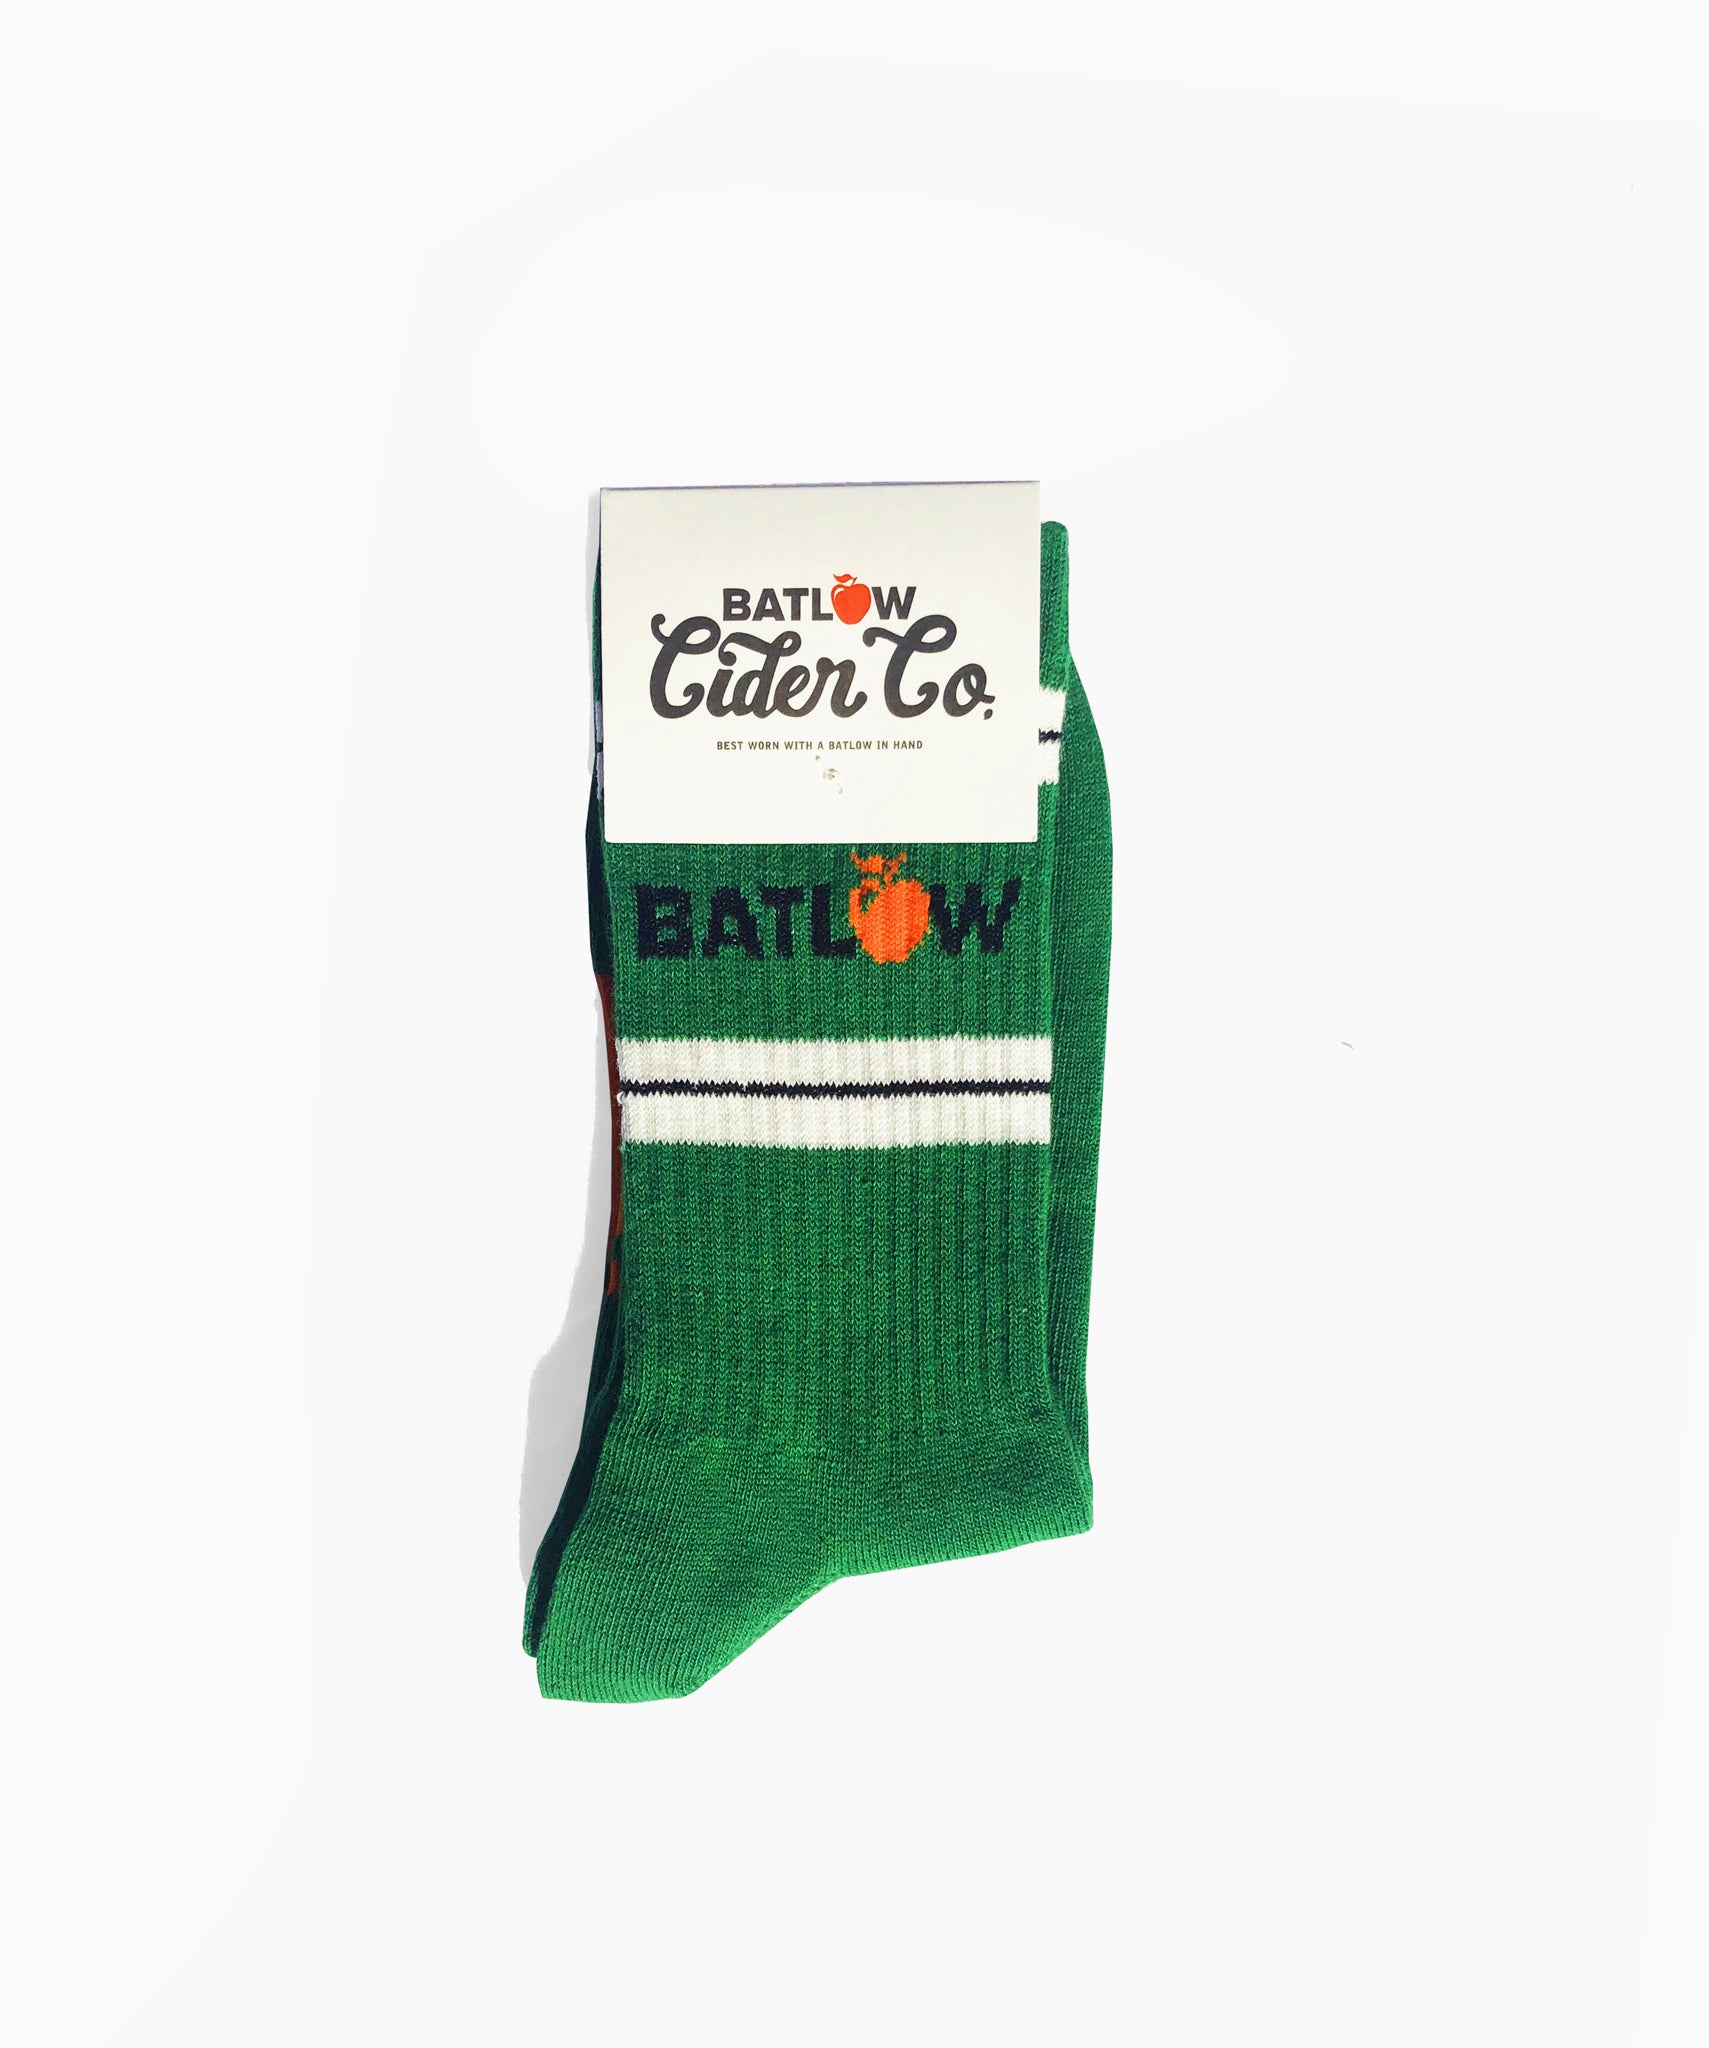 Batlow Cider Co Socks